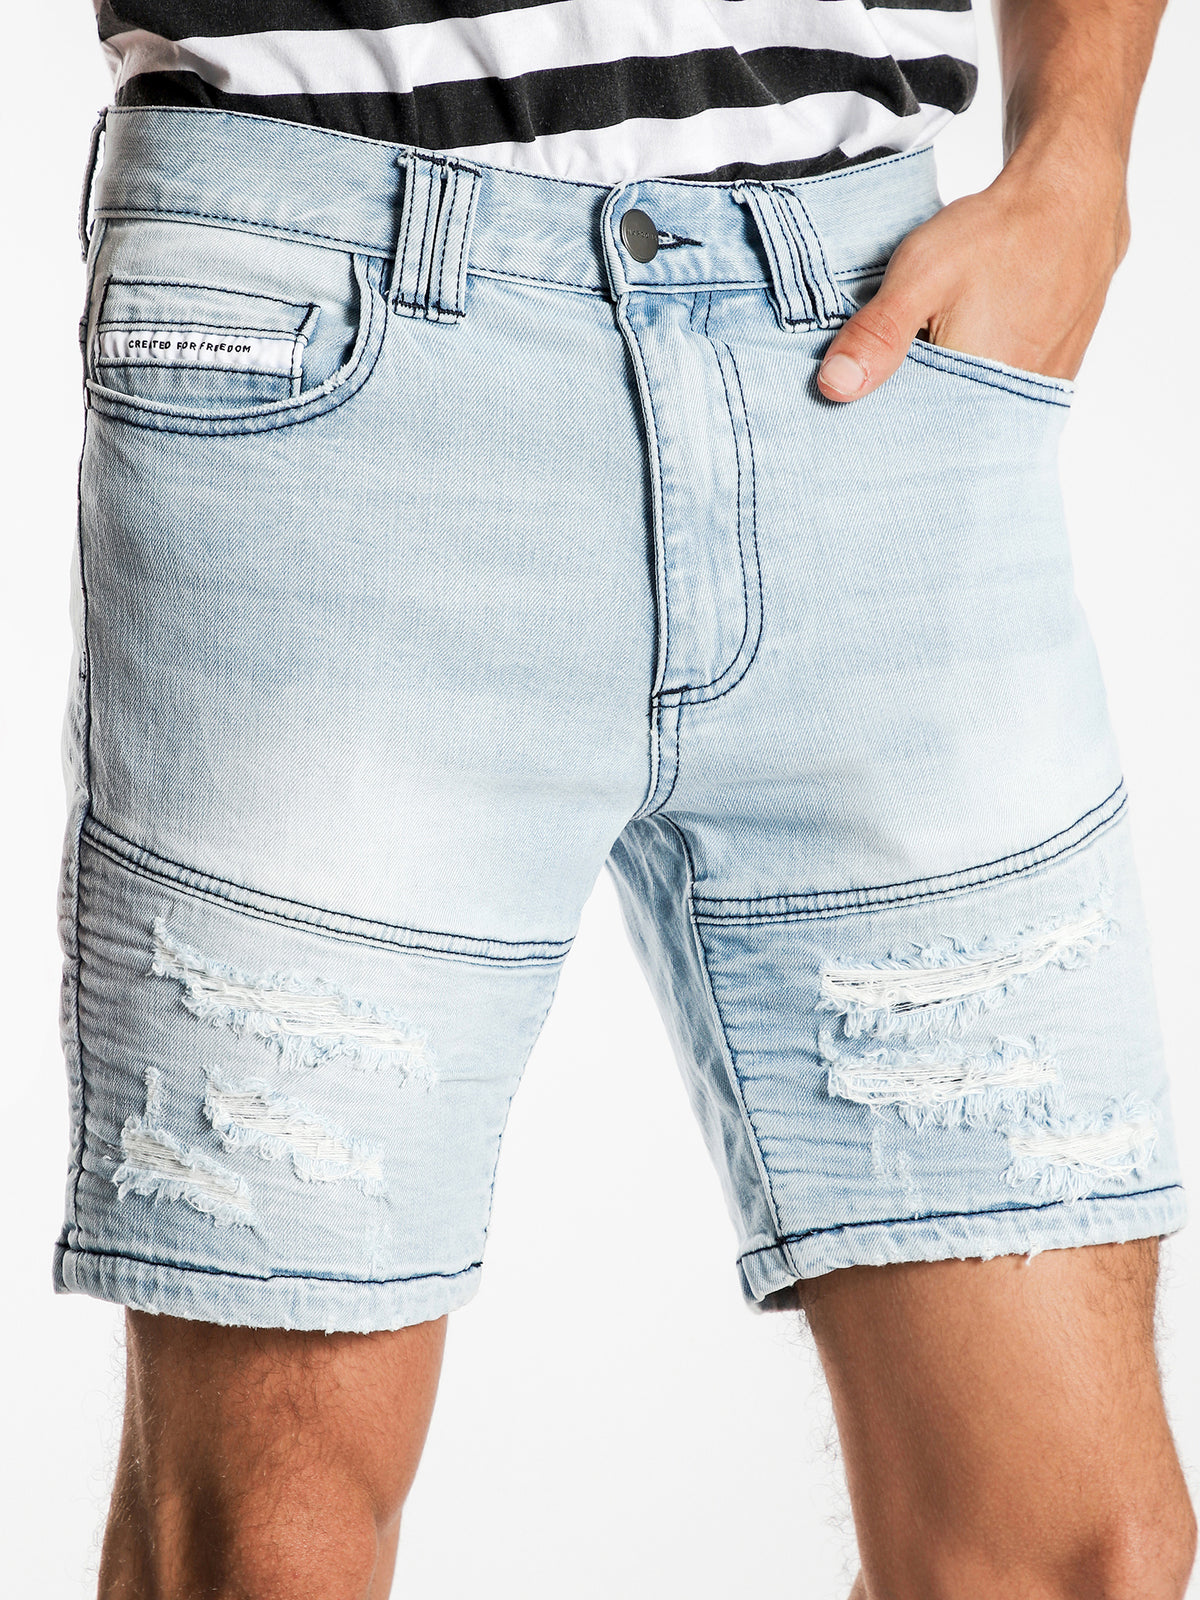 Combination Shorts in Indianapolis Blue Denim